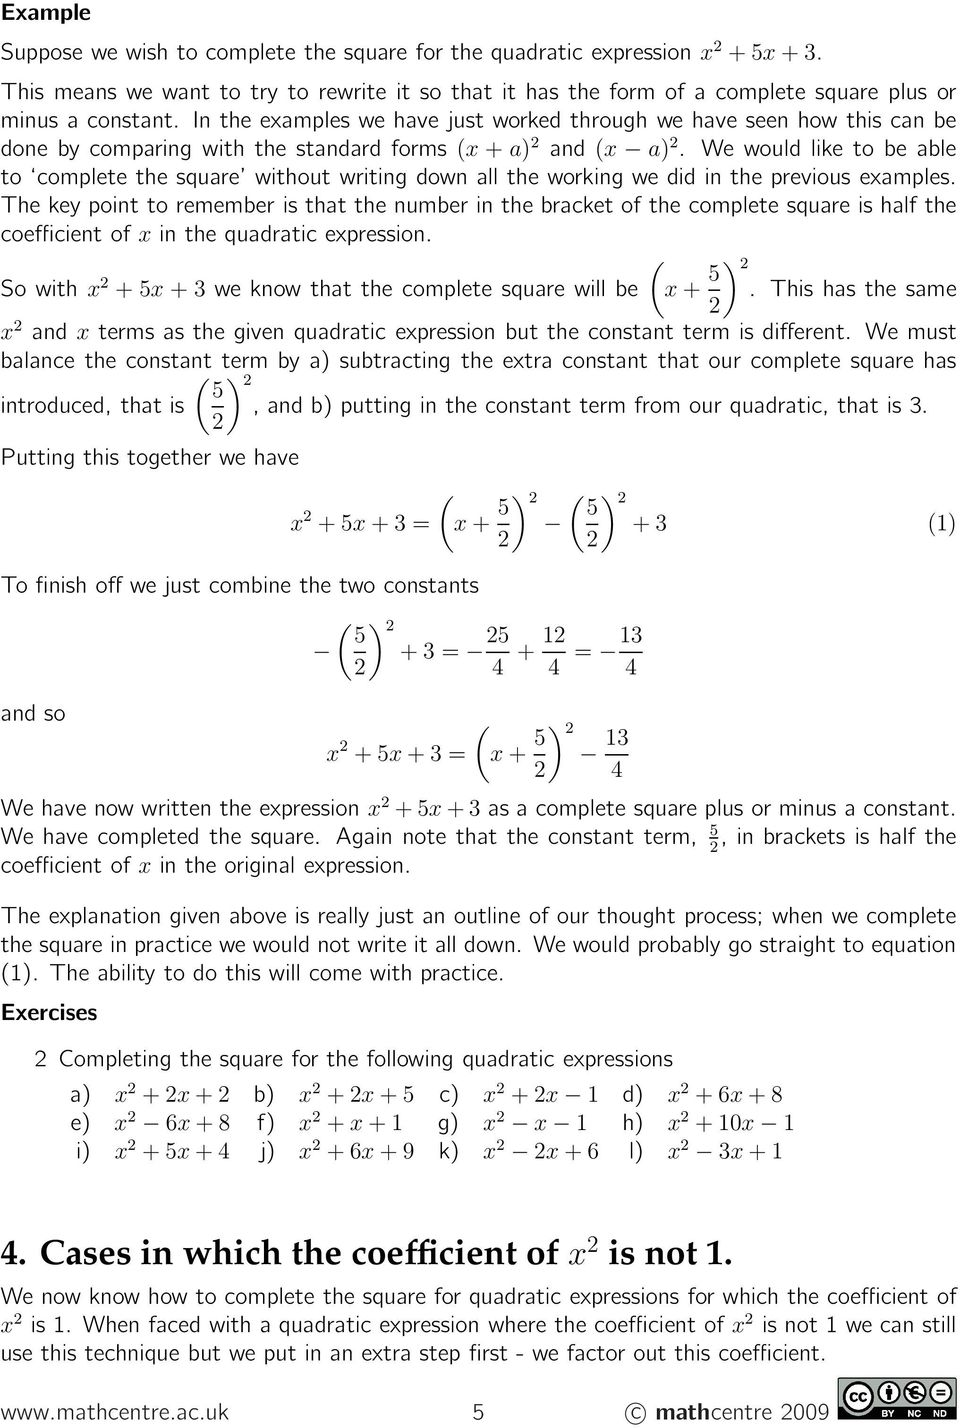 Completing The Square Pdf